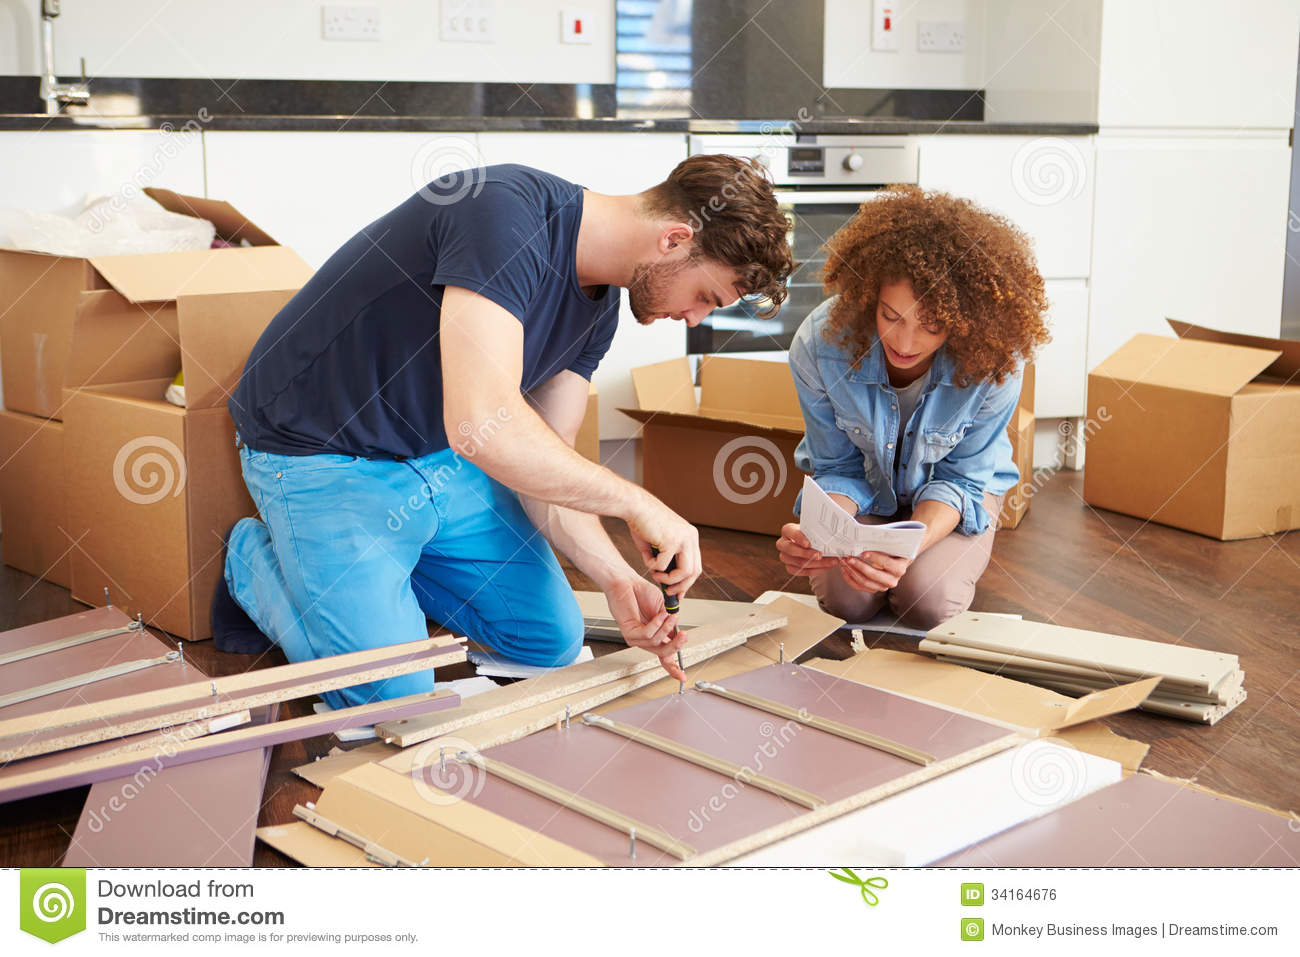 Couple Putting Together Self Assembly Furniture In New Home Royalty Free  Stock Image